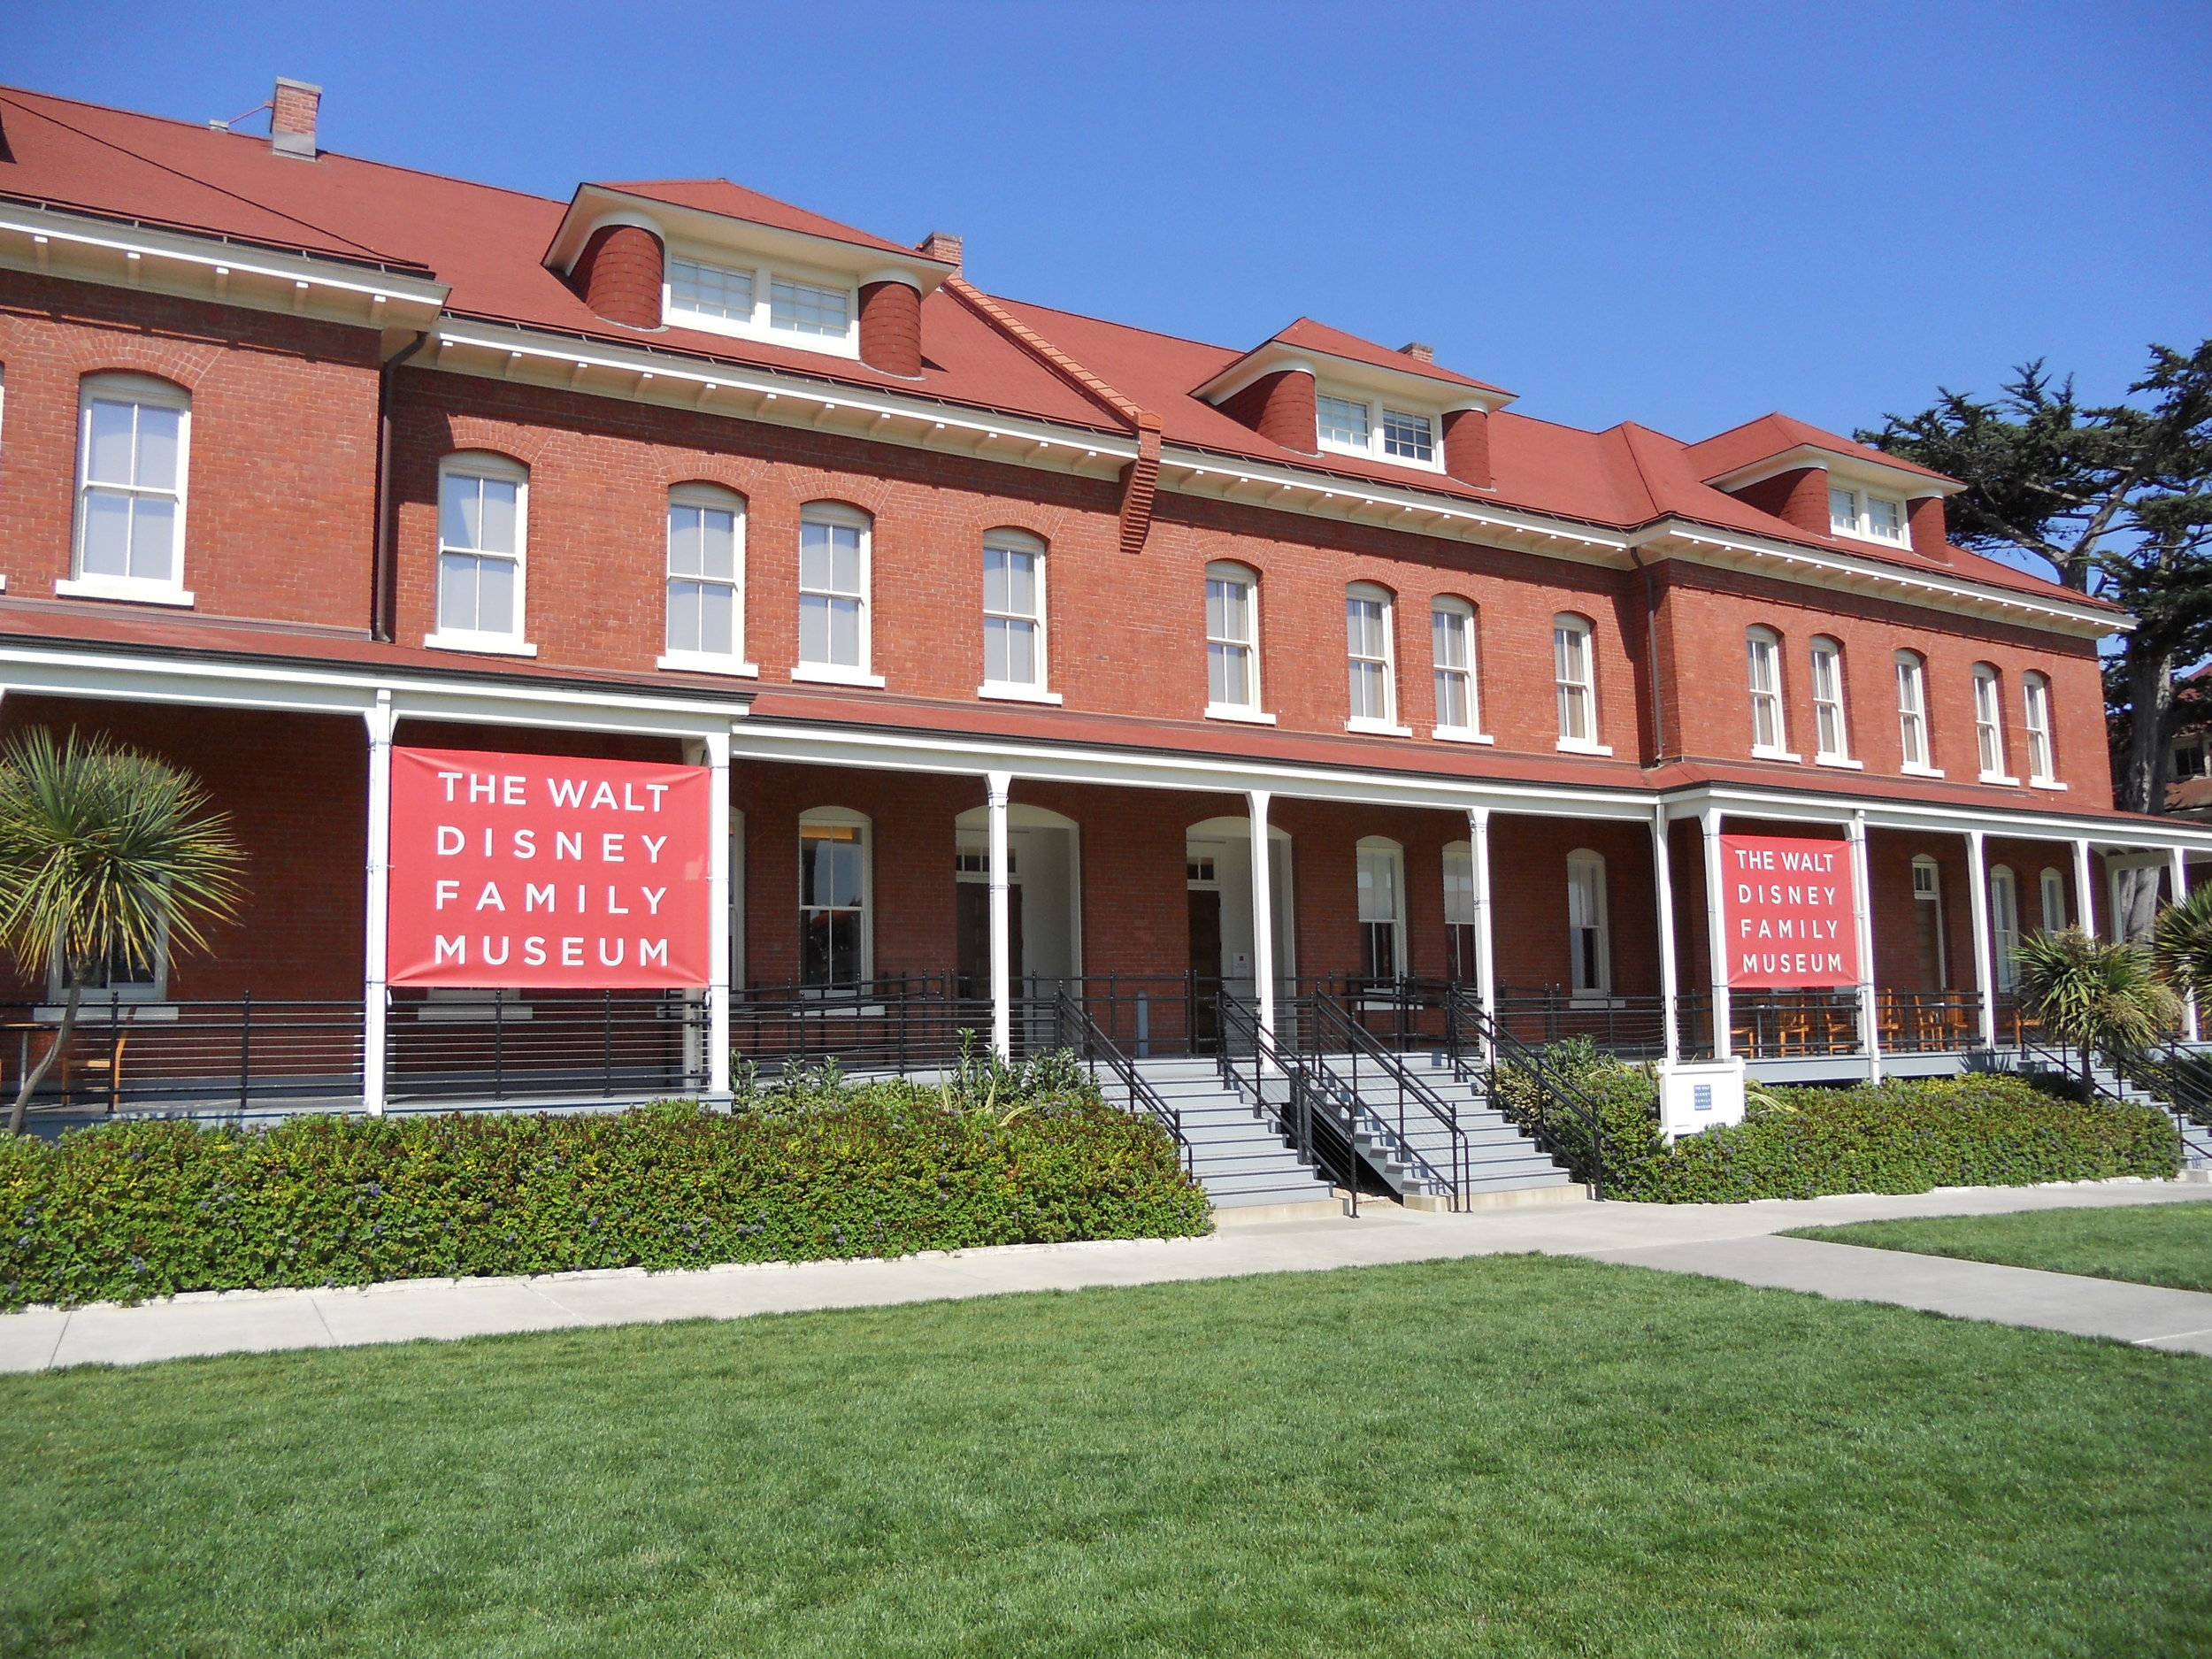 The front of the Walt Disney Museum building.